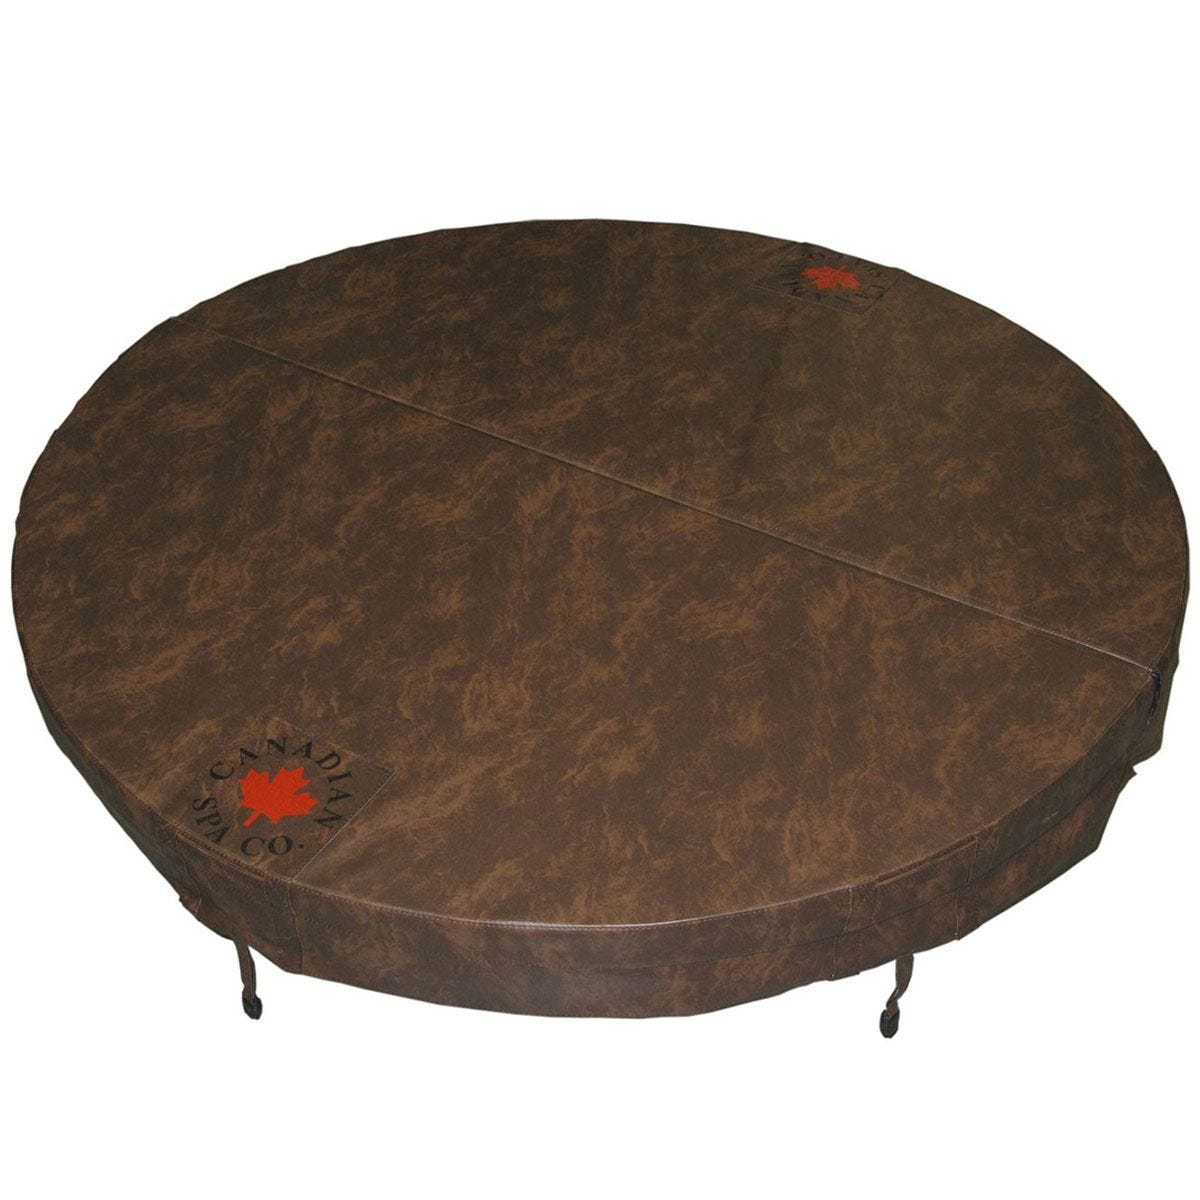 Canadian Spa Round Hot Tub Cover - Brown